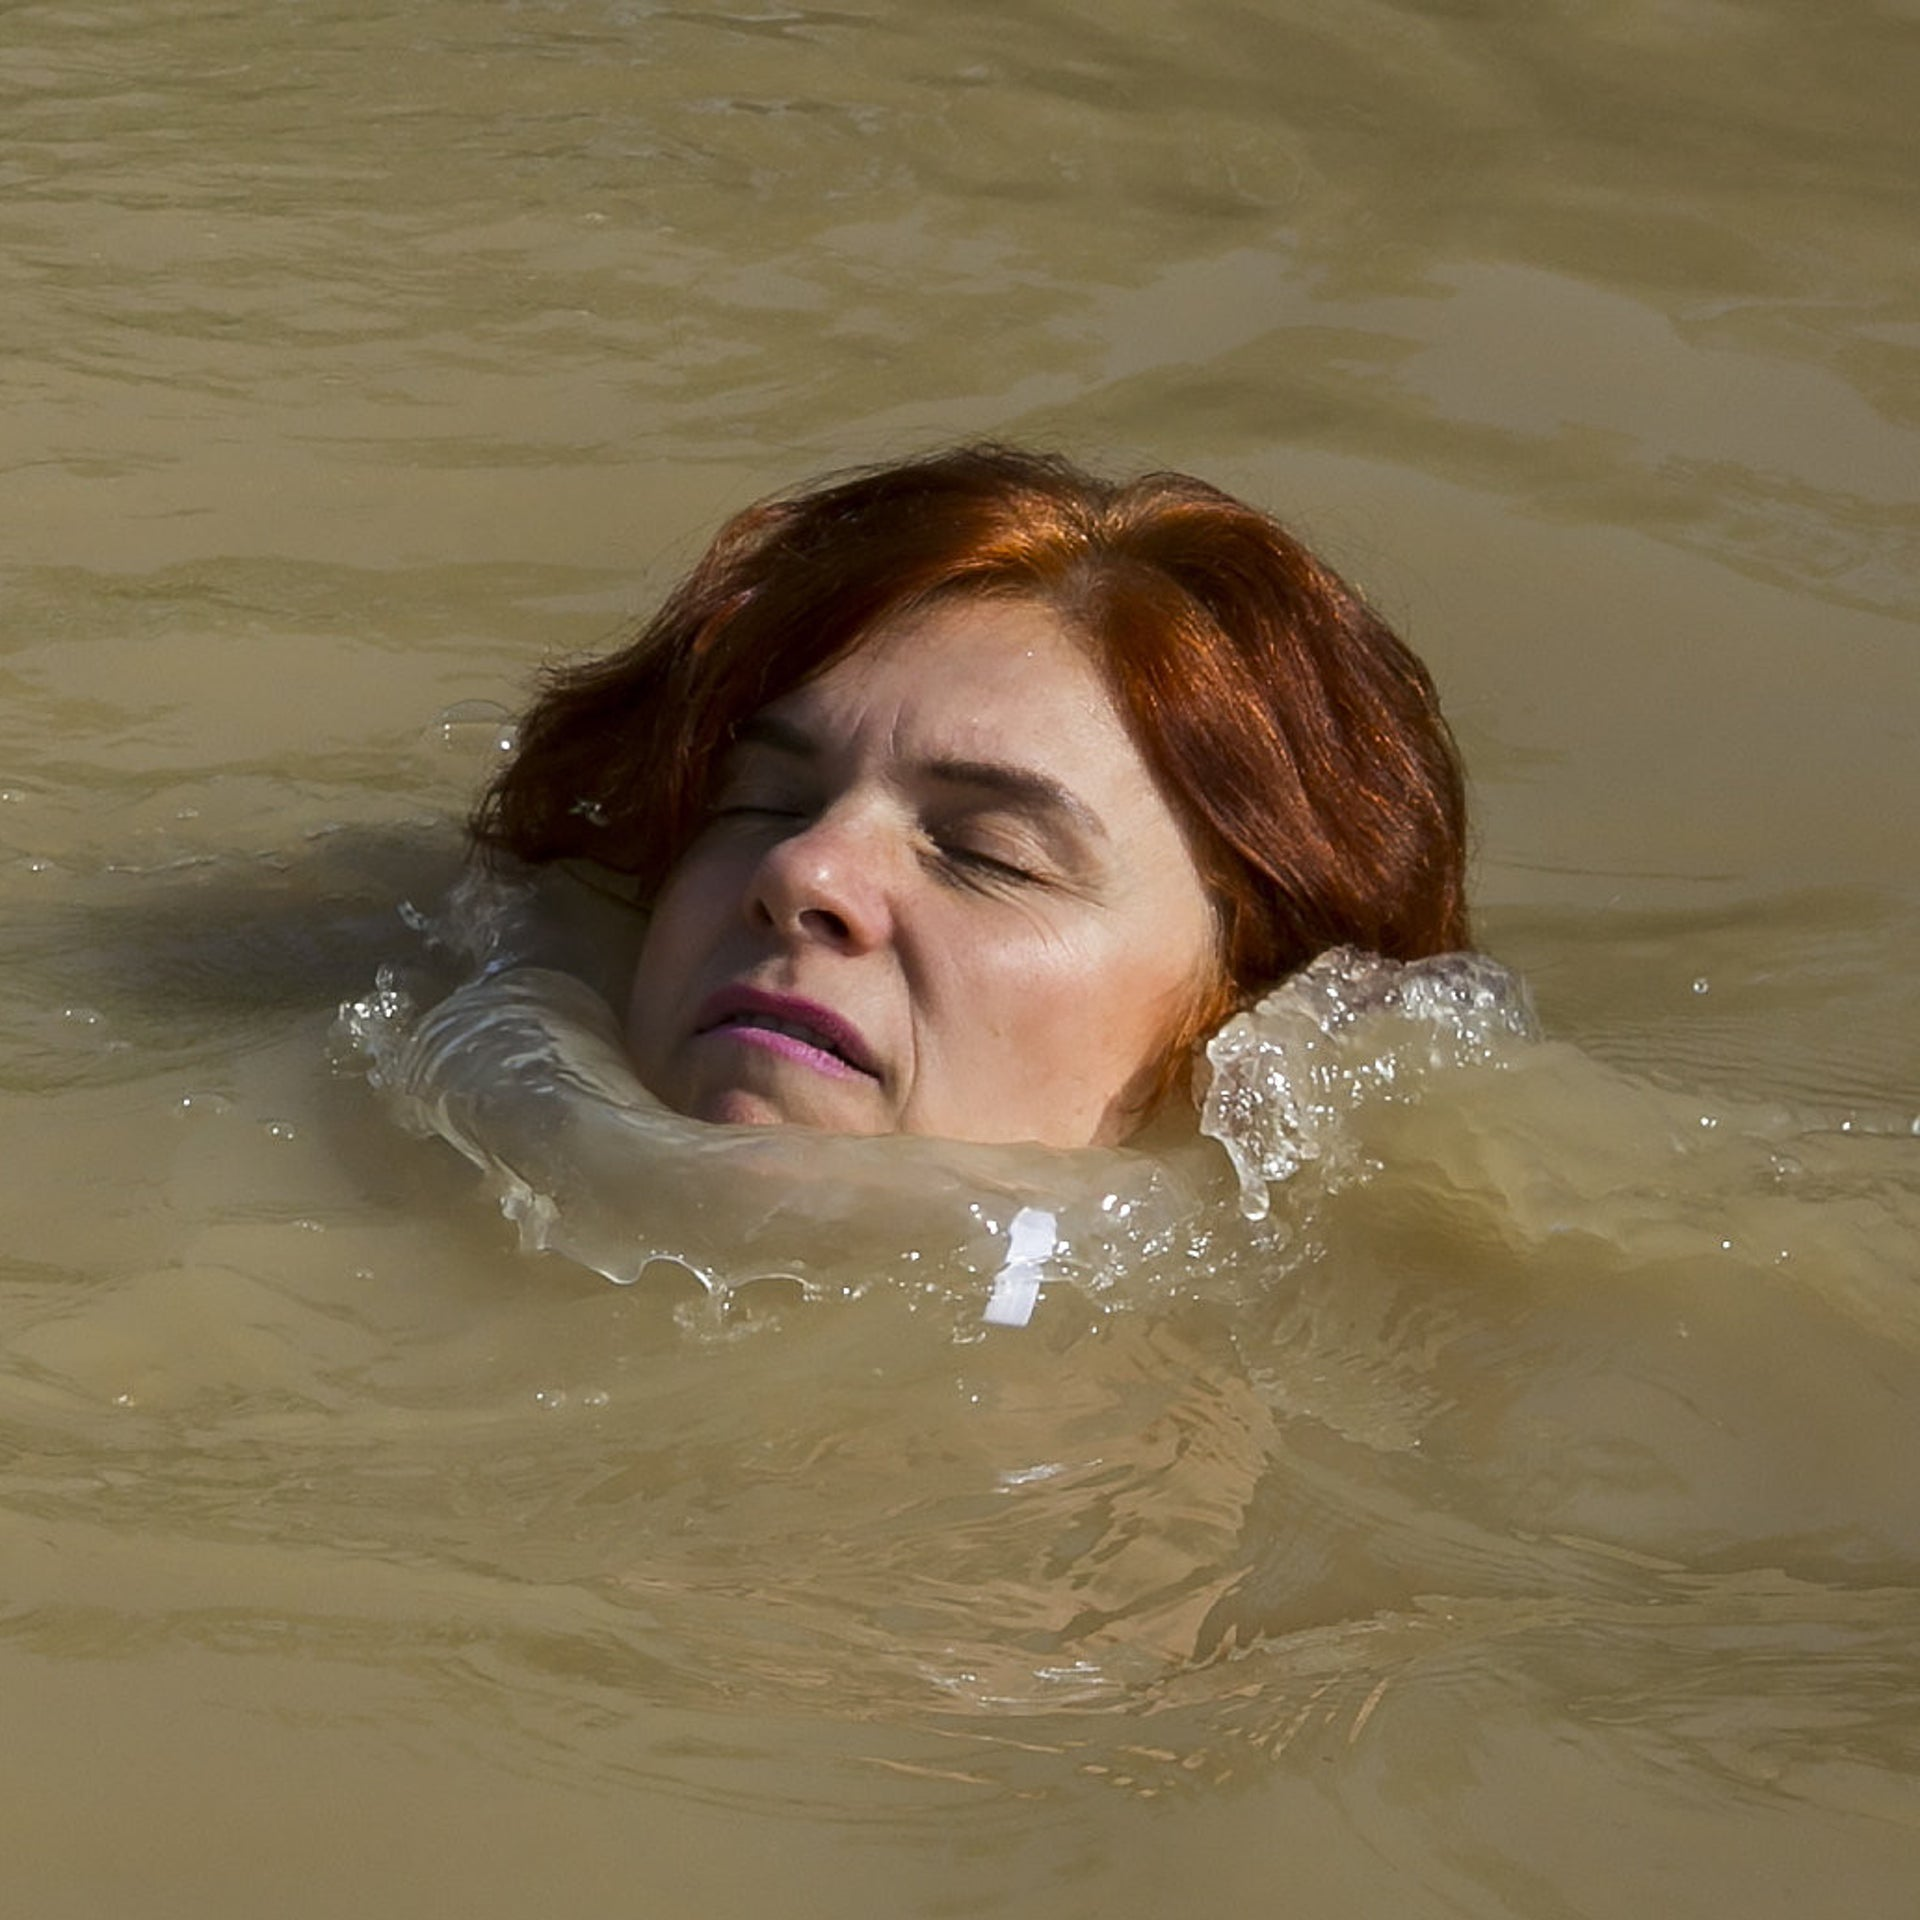 A visitor is baptizing in the Jordan river at Qasr el-Yahud. Safer in the water than on the ground.